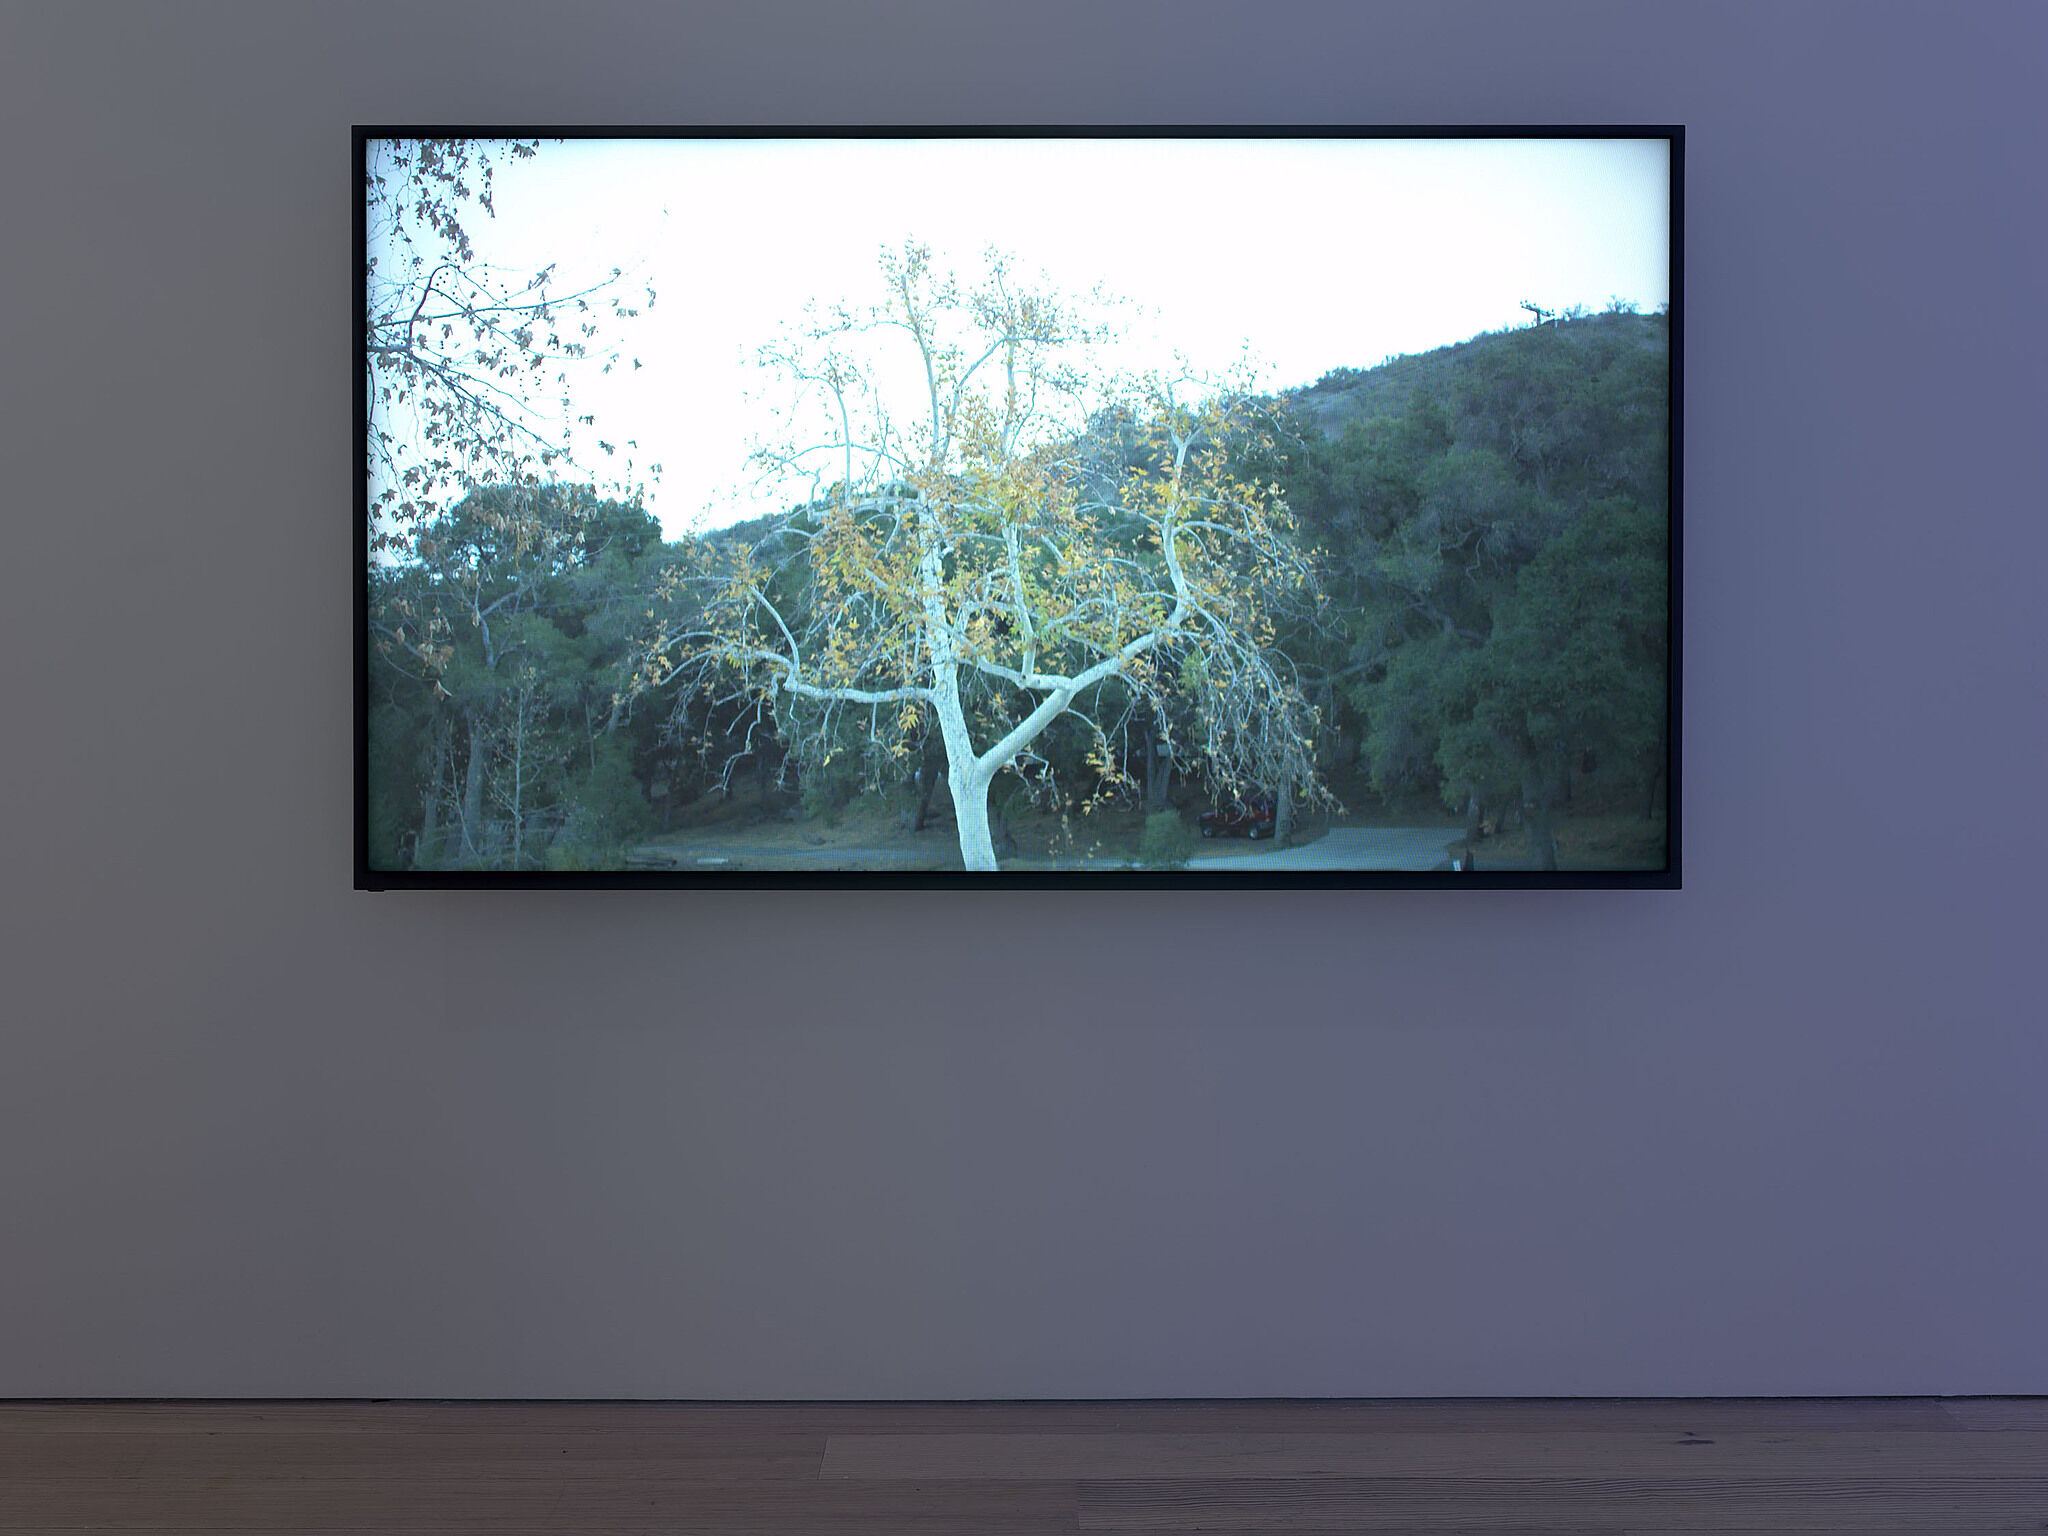 A video monitor with an image of a tree.